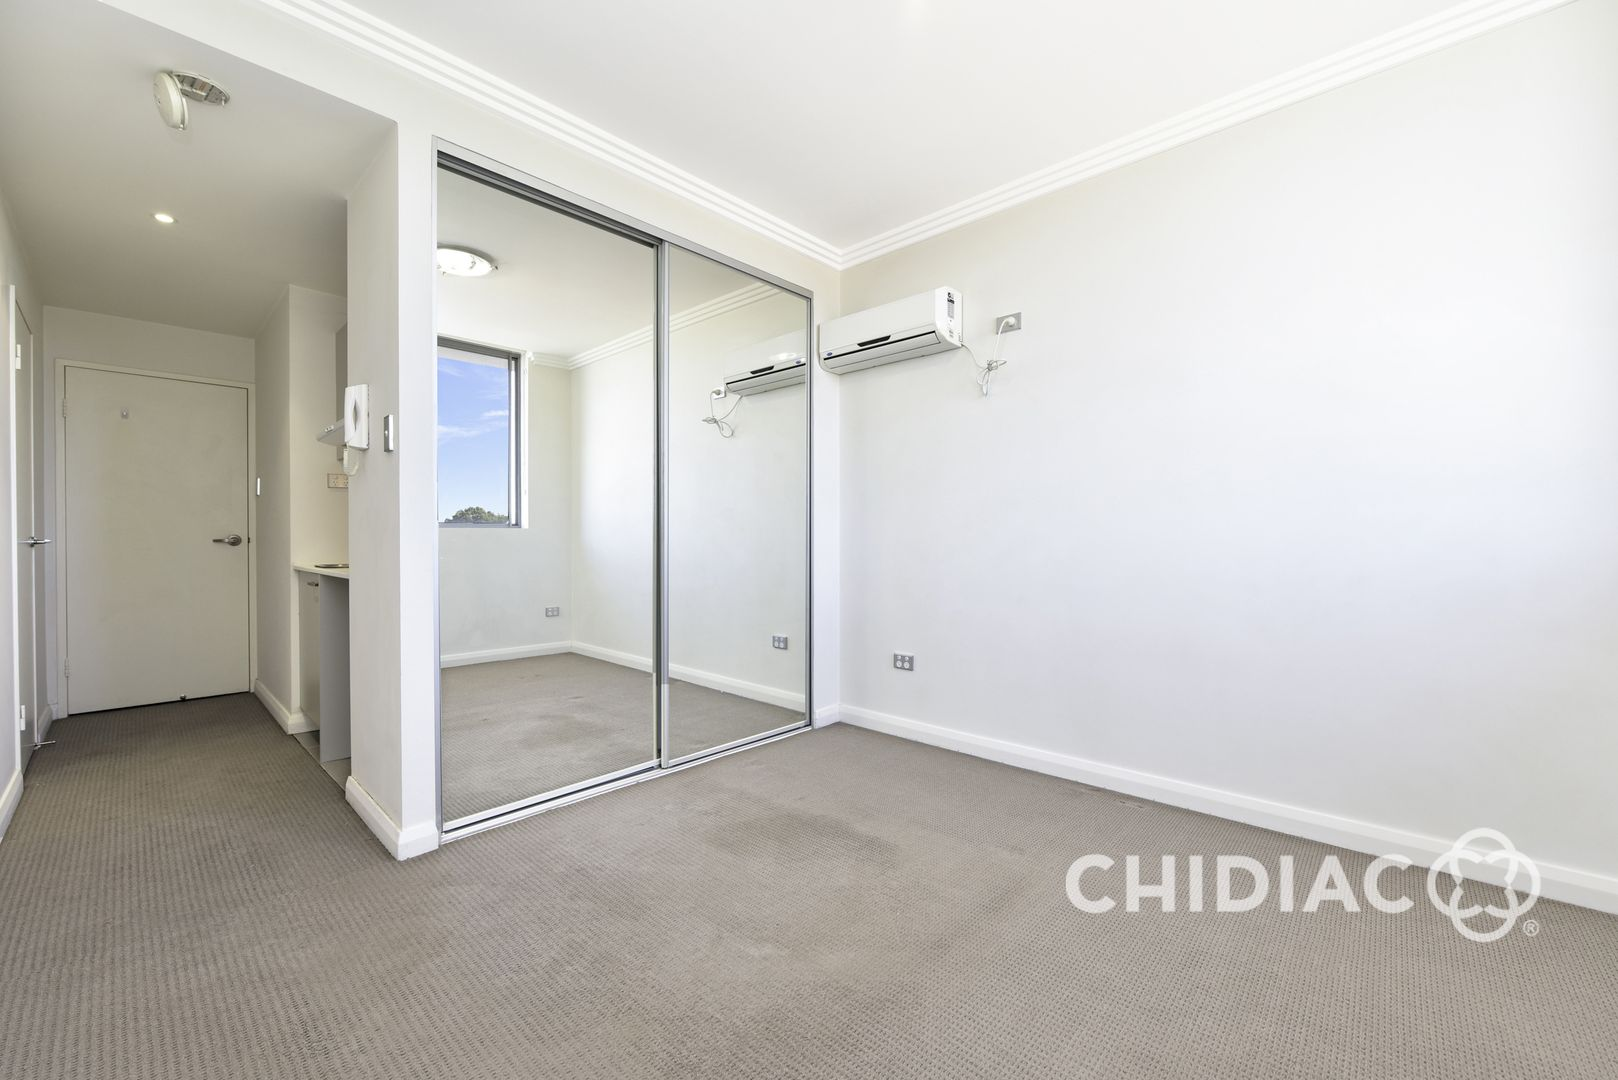 12A/79-87 Beaconsfield Street, Silverwater NSW 2128, Image 1